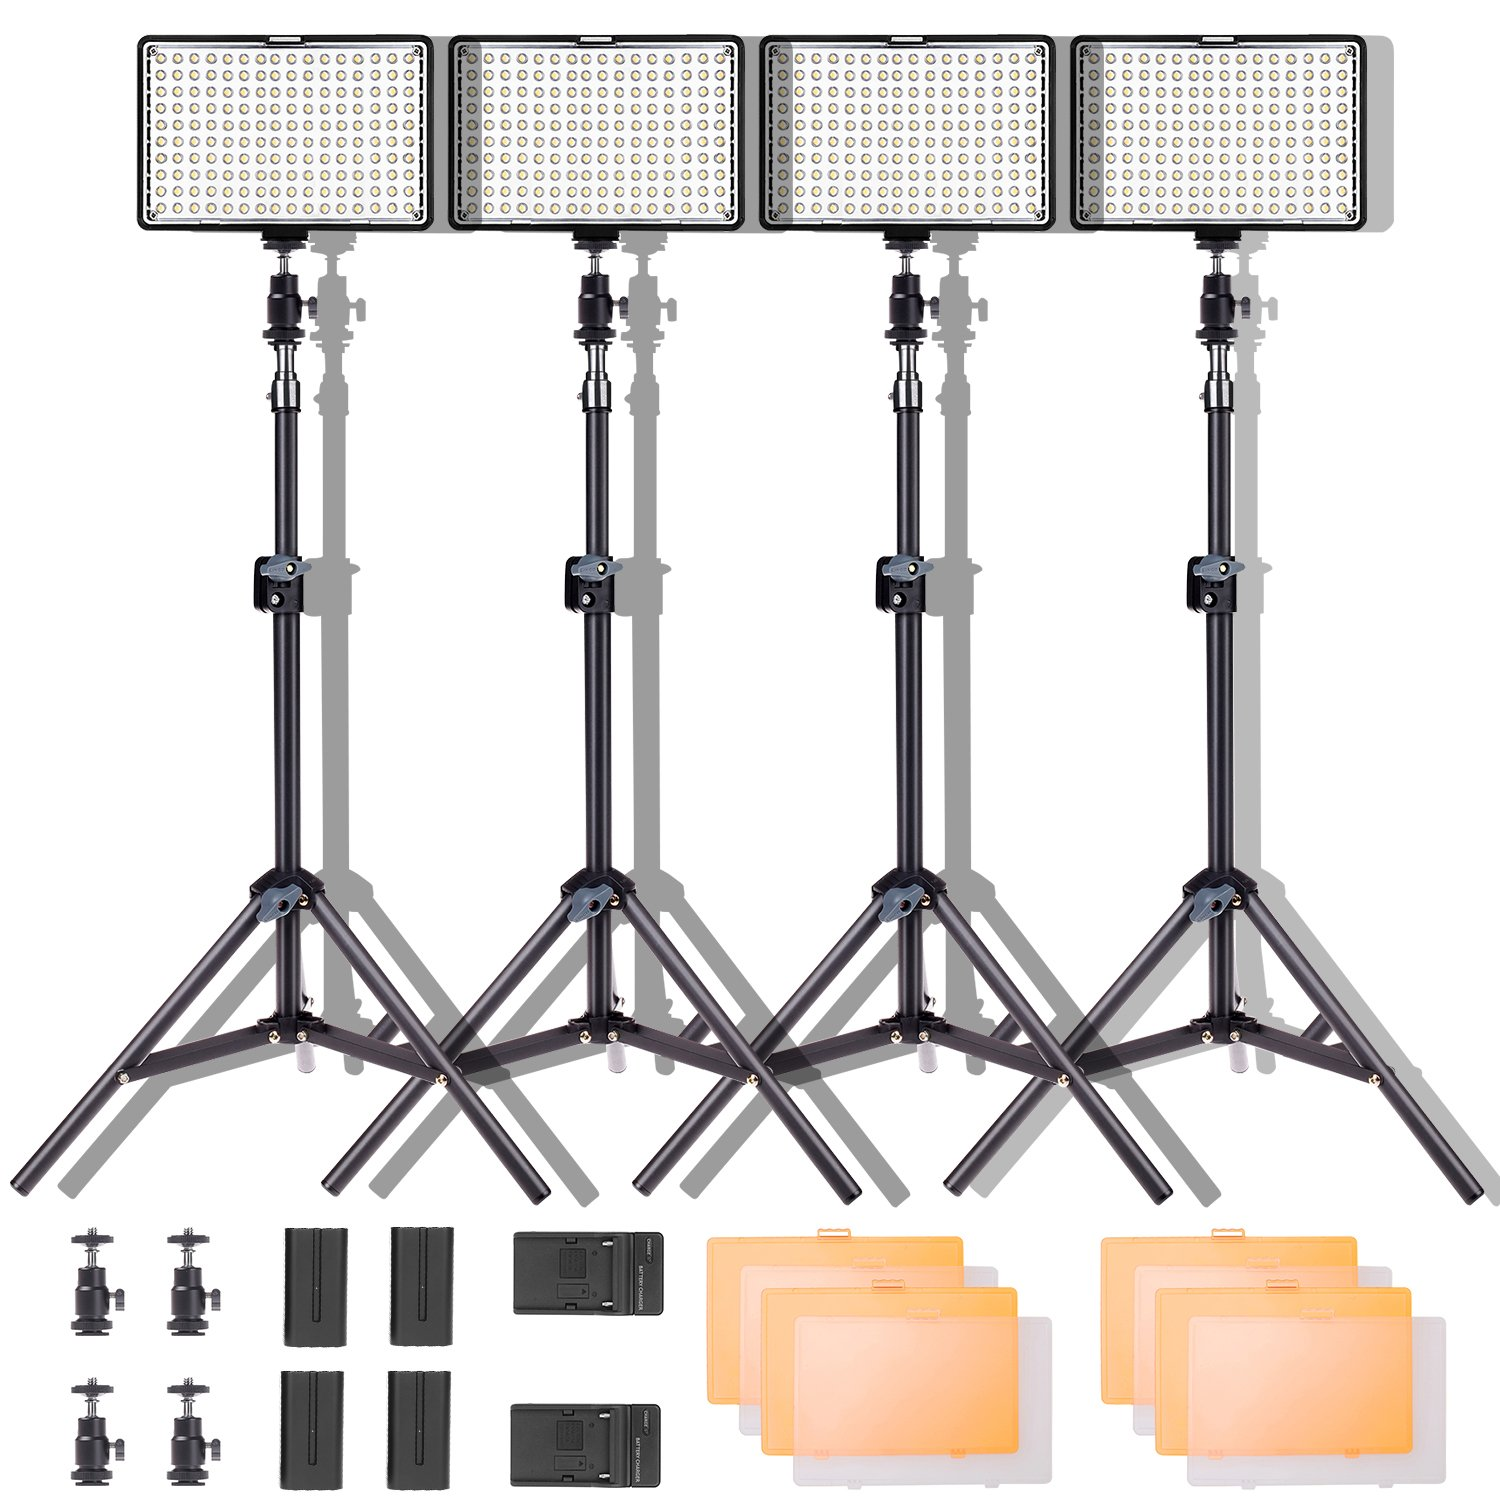 Led Video Light Kit,SAMTIAN 160 LED Studio Light Dimmable Video Camera Light Panel with Battery Charger Light Stand Mini Ball Head and Carry Case for Digital DSLR Cameras (TL-160S x4 kit) by SAMTIAN